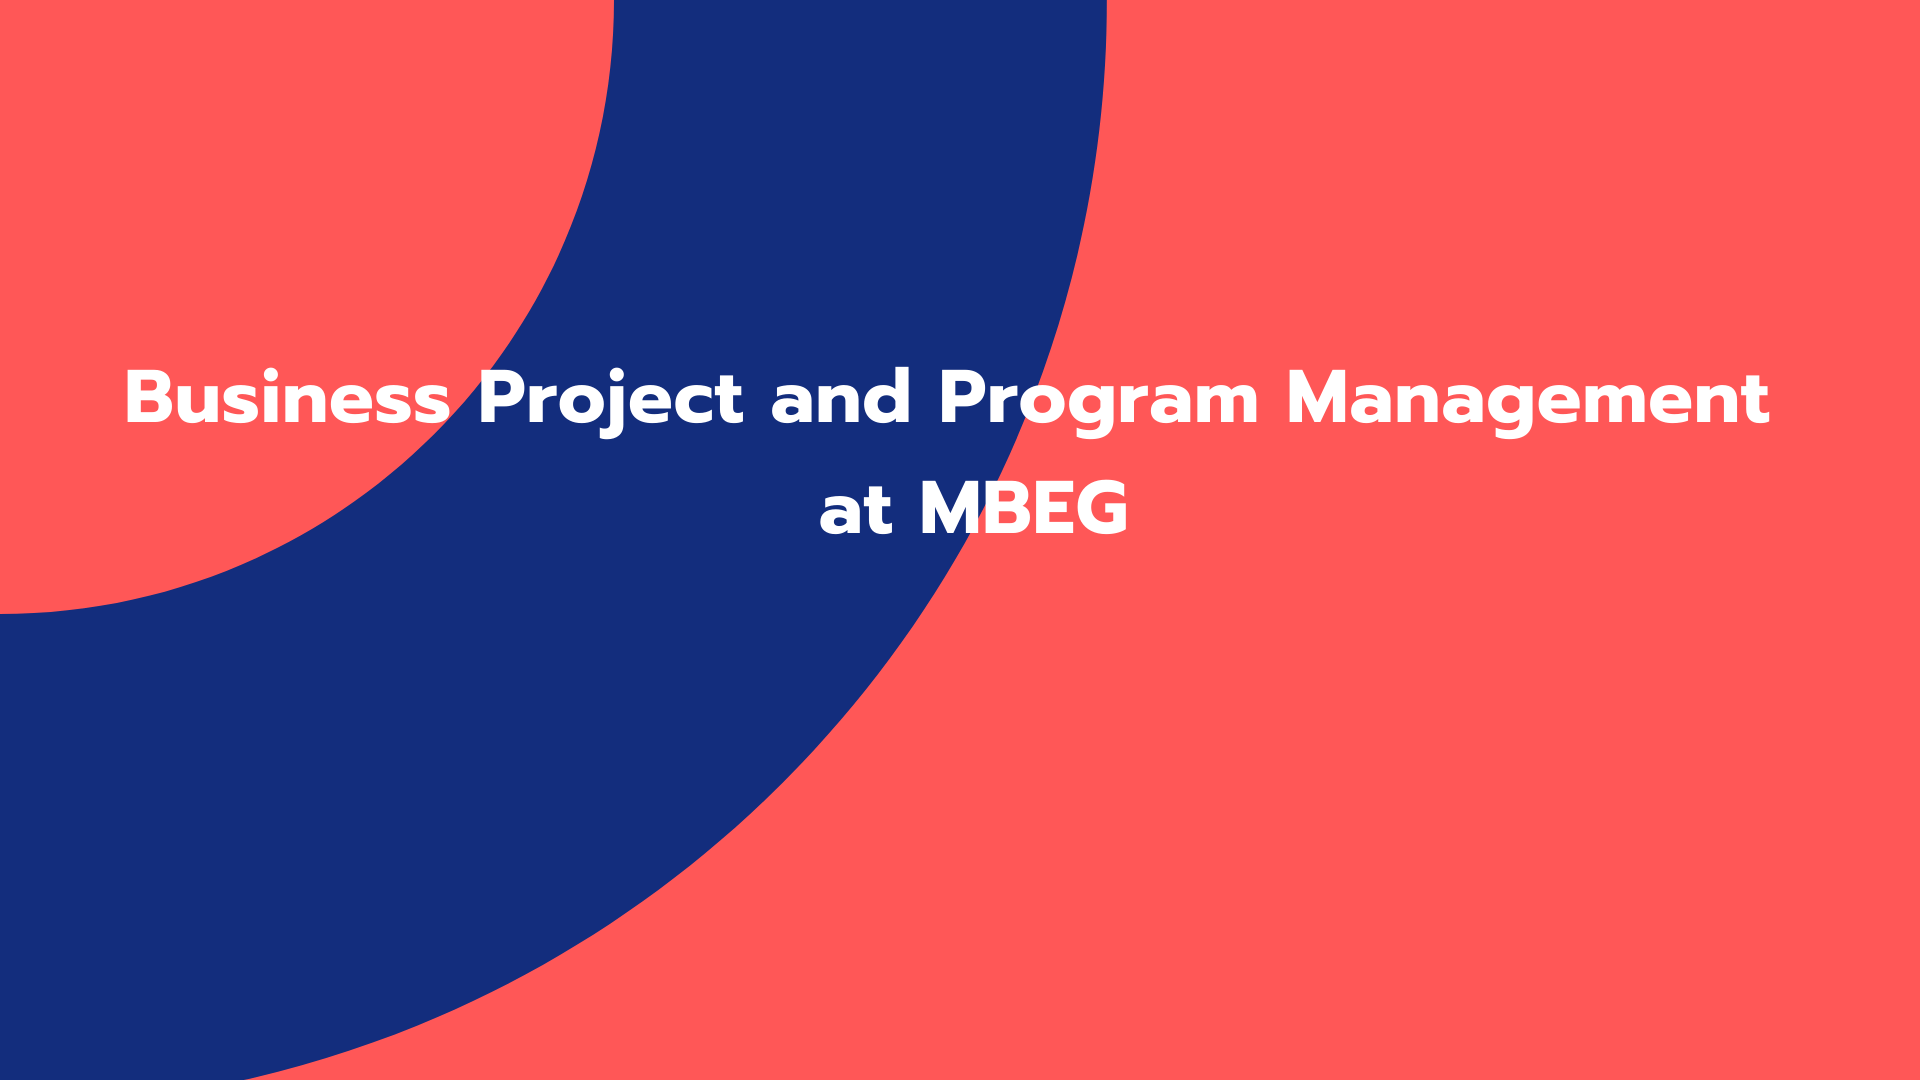 Business Project and Program Management: MBEG